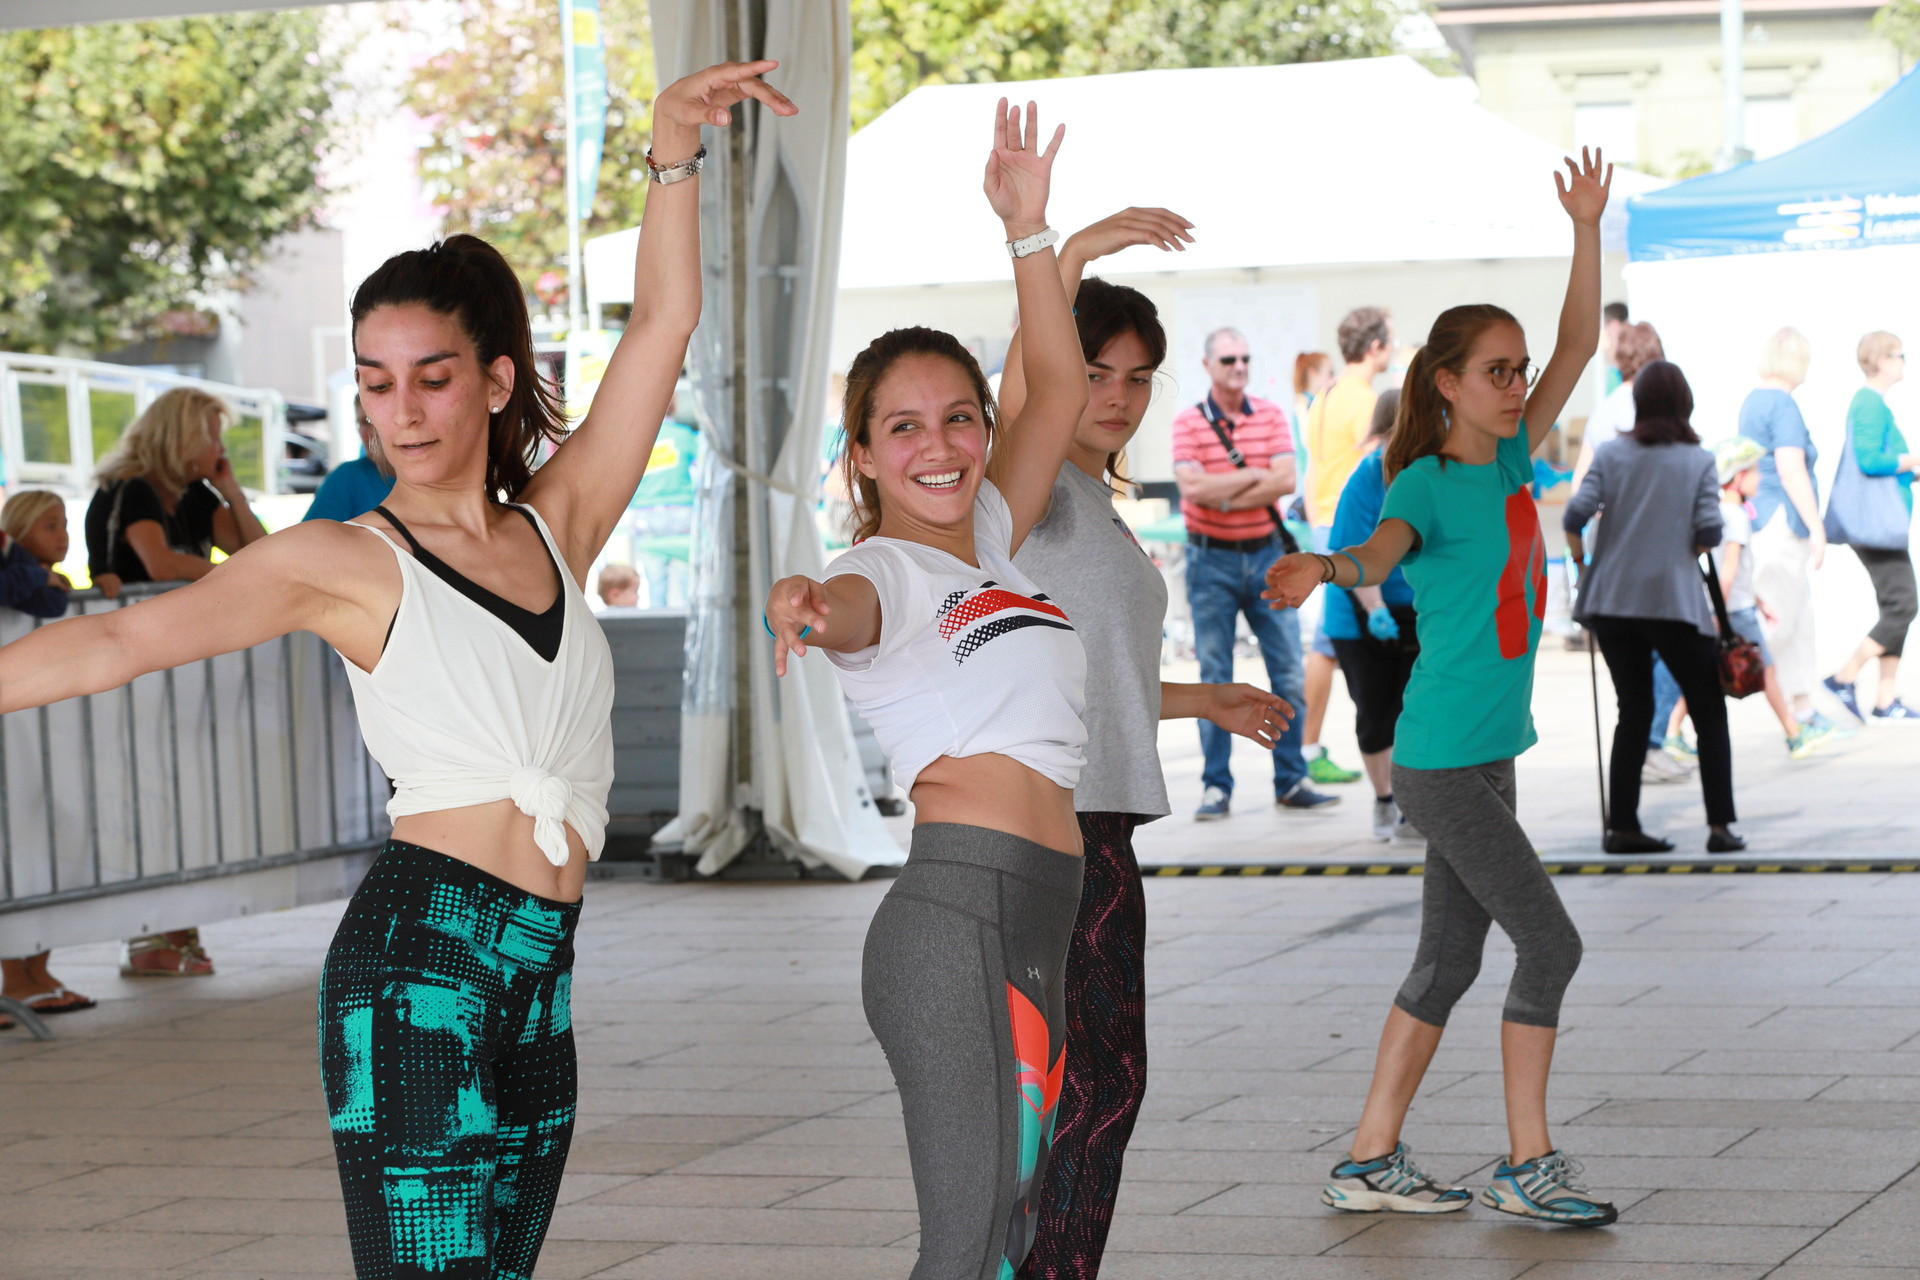 FISU launched its Healthy Campus project in May in a bid to help students remain active while universities were closed owing to the coronavirus pandemic ©FISU